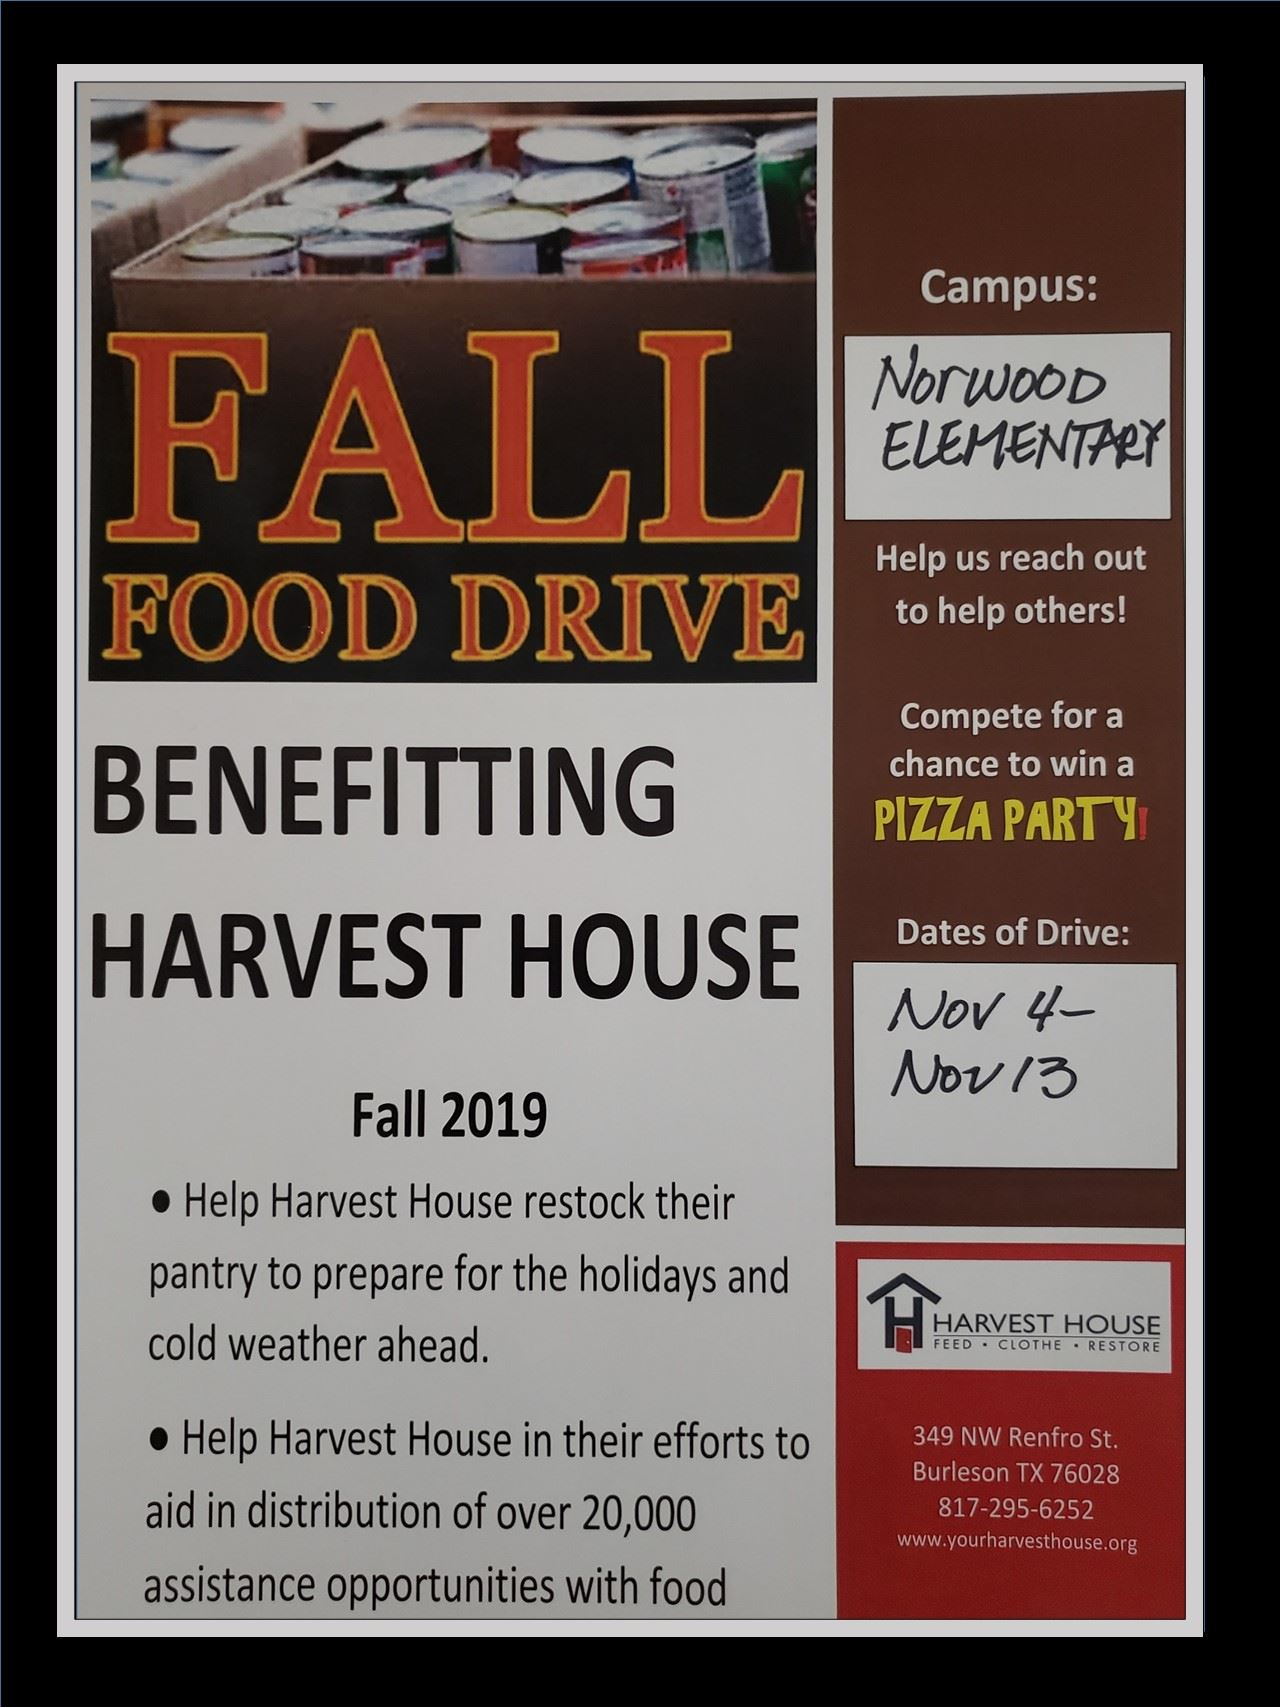 brown, red, orange fall food drive benefitting Harvest House